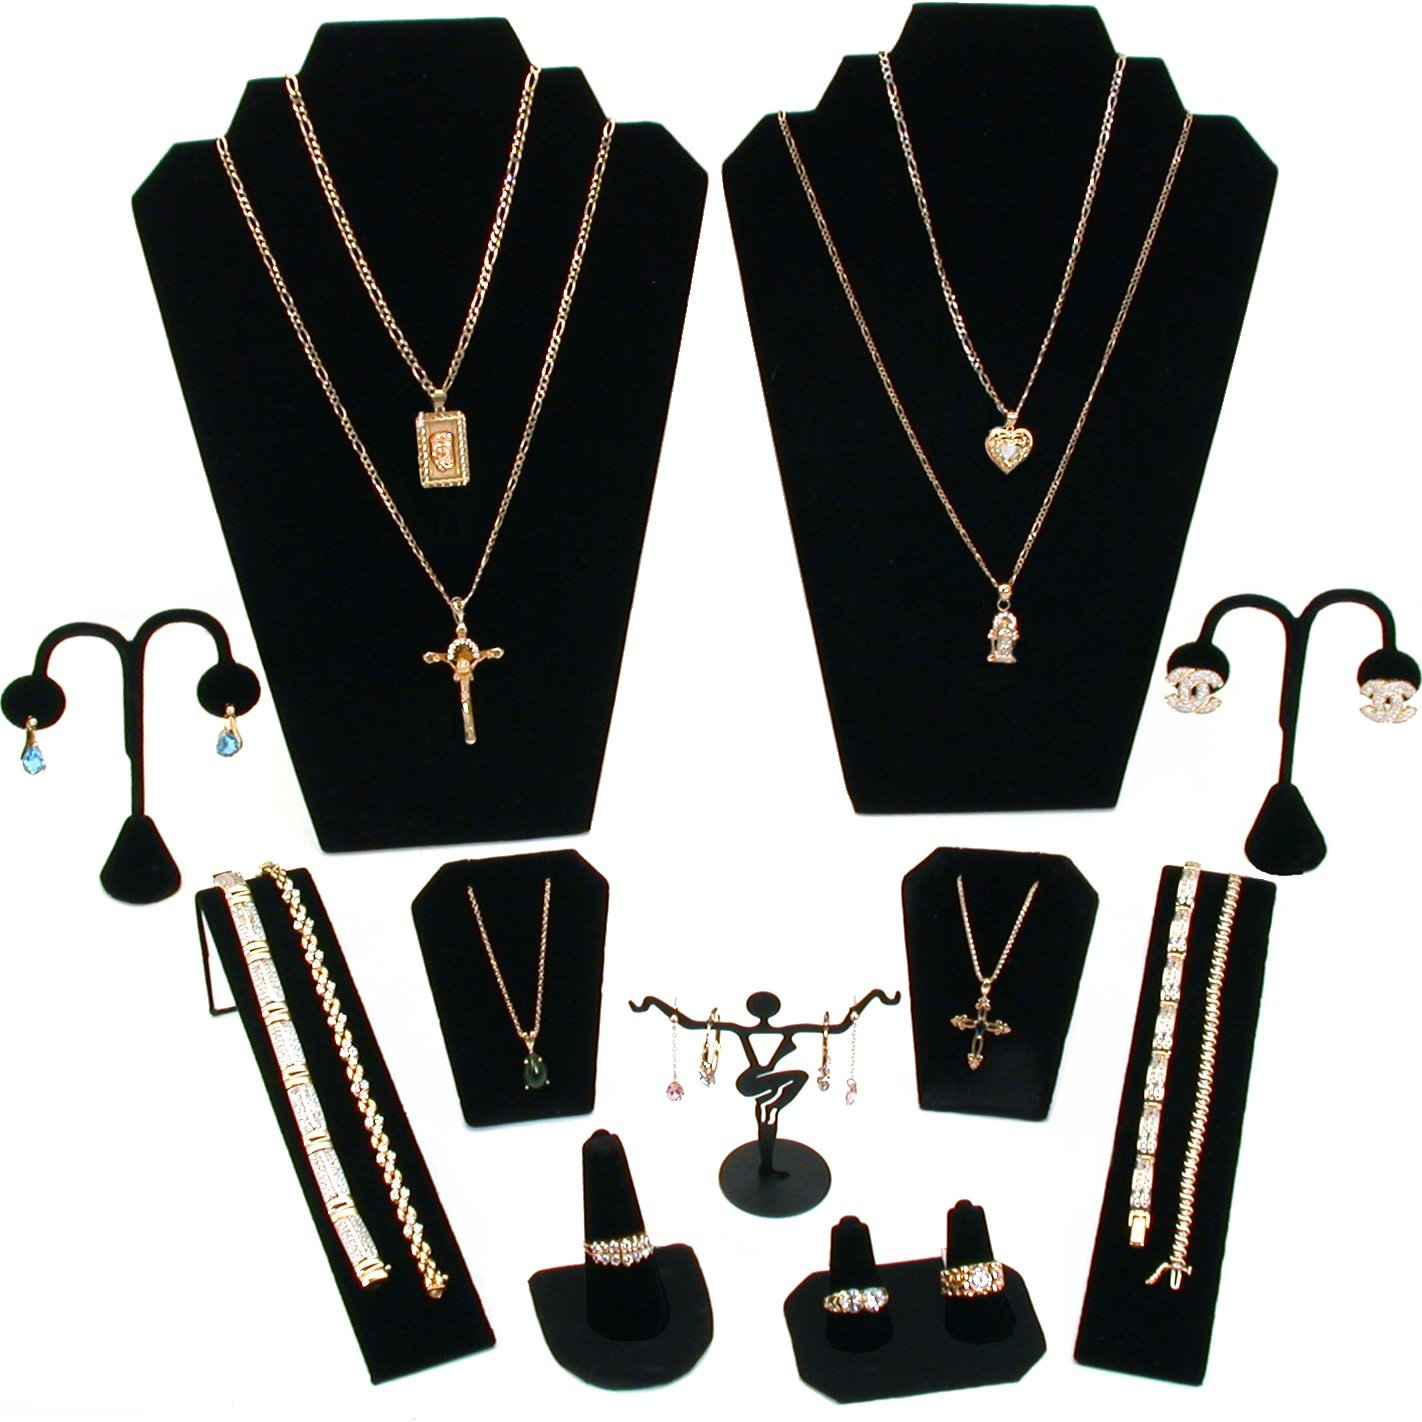 11 Pc Set Black Velvet Jewelry Displays Busts Bonus New FindingKing KIT-10370